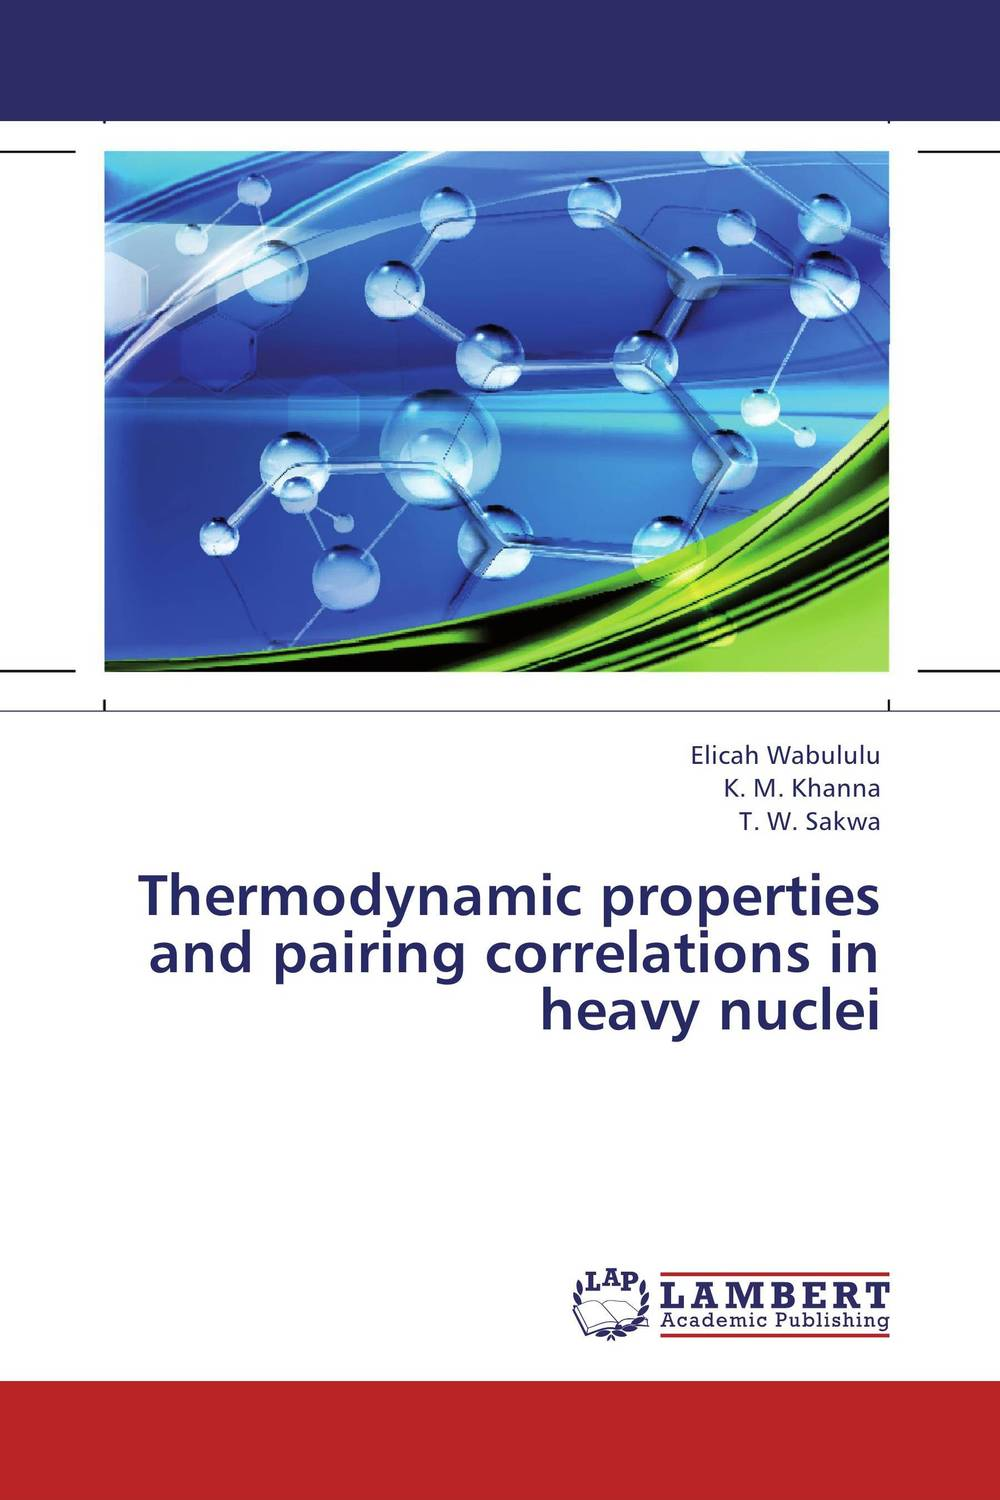 Thermodynamic properties and pairing correlations in heavy nuclei